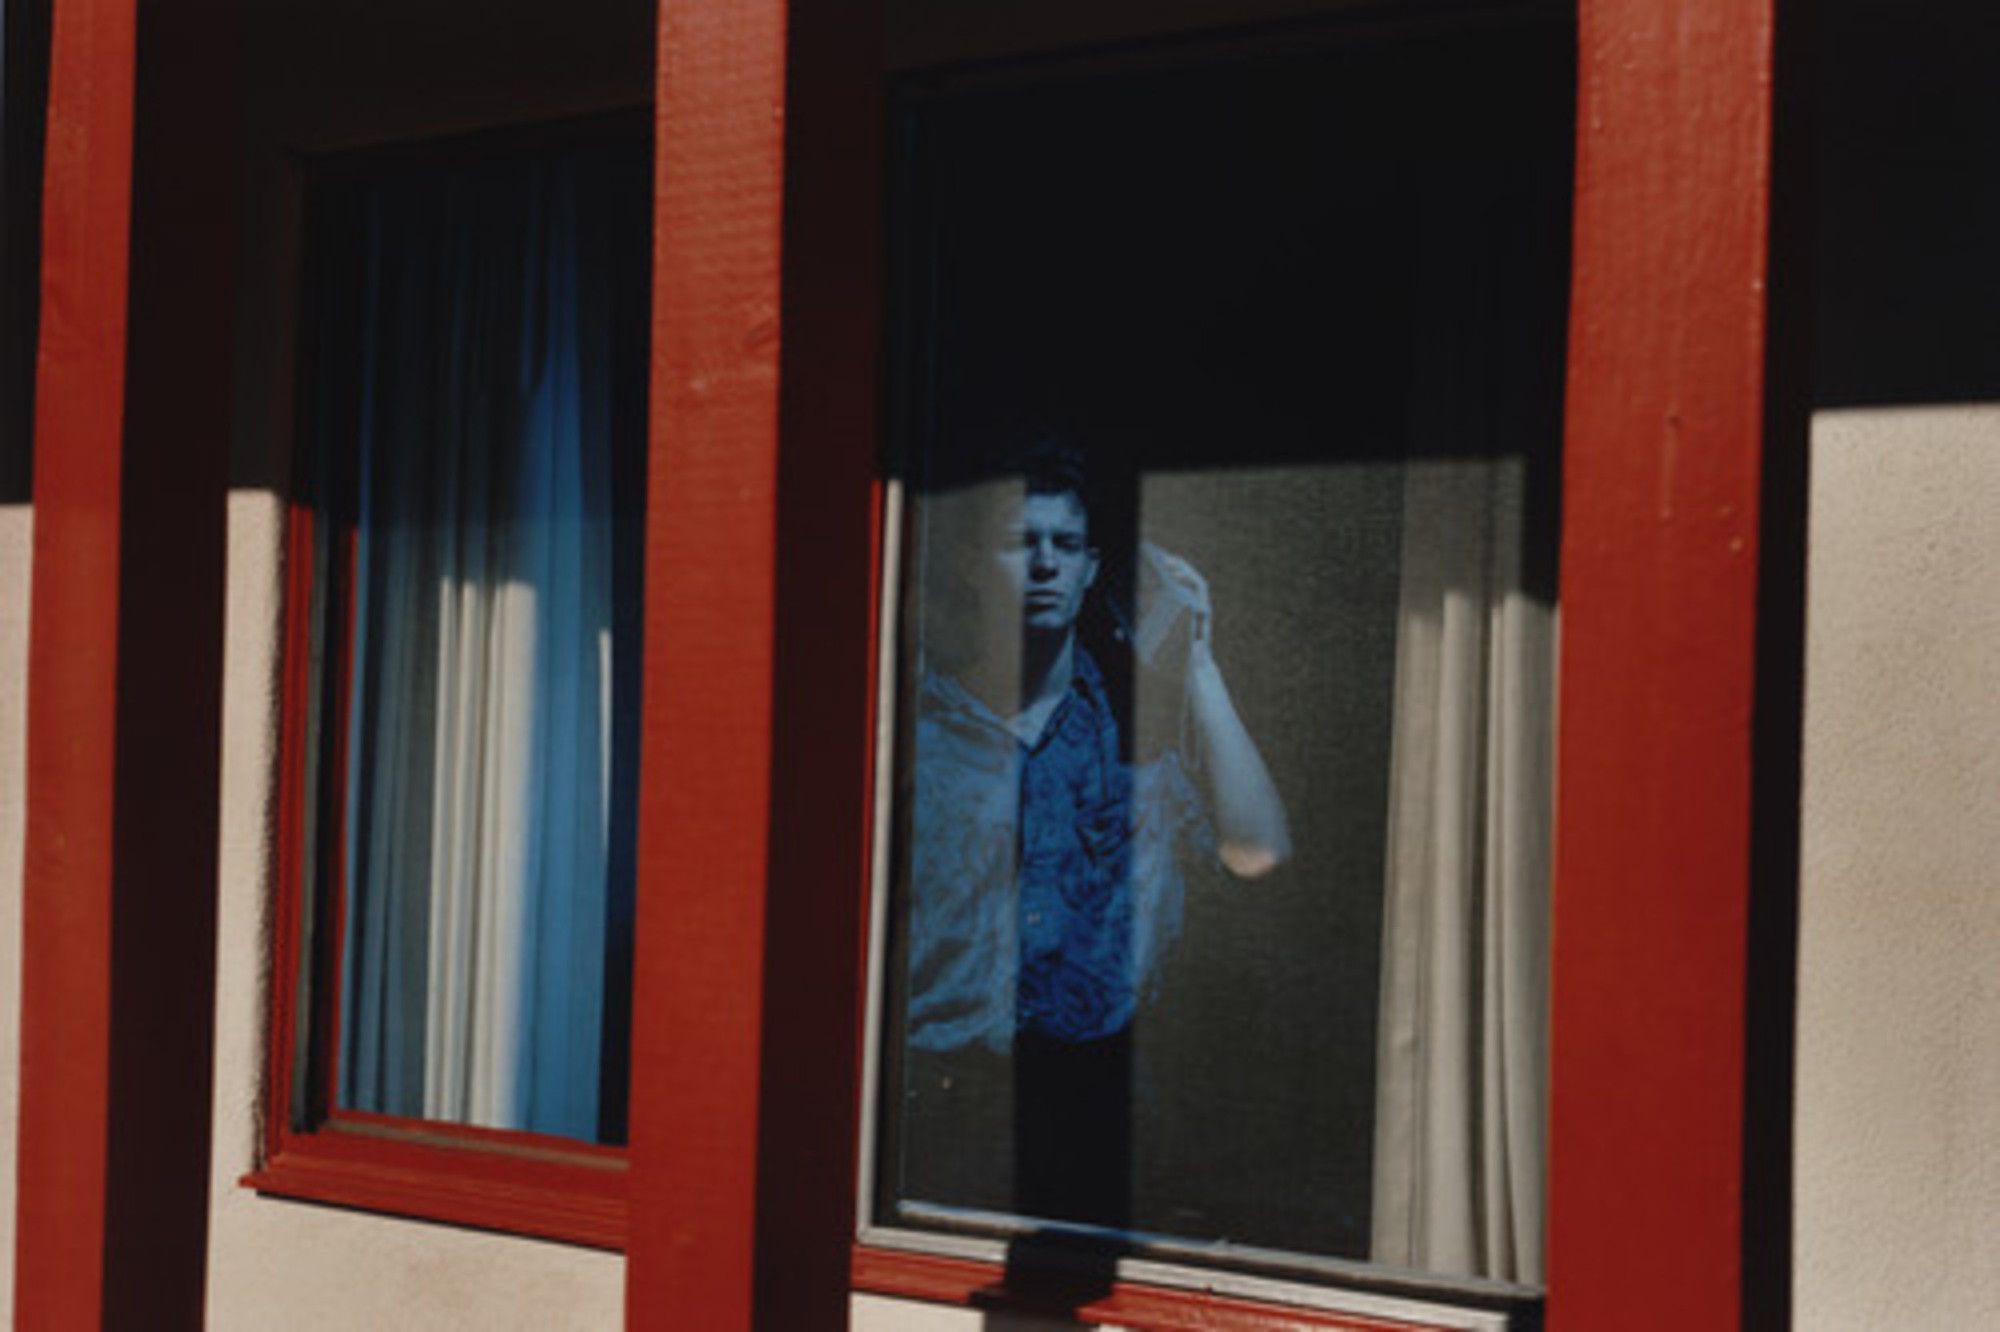 Philip-Lorca diCorcia. William Charles Everlove; 26 years old; Stockholm, Sweden via Arizona; $40. 1990–92. Chromogenic color print, 23 3/4 × 34 13/16″ (60.4 × 88.5 cm). Gift of Carol and Arthur Goldberg. © 2013 Philip-Lorca diCorcia, courtesy David Zwirner, New York